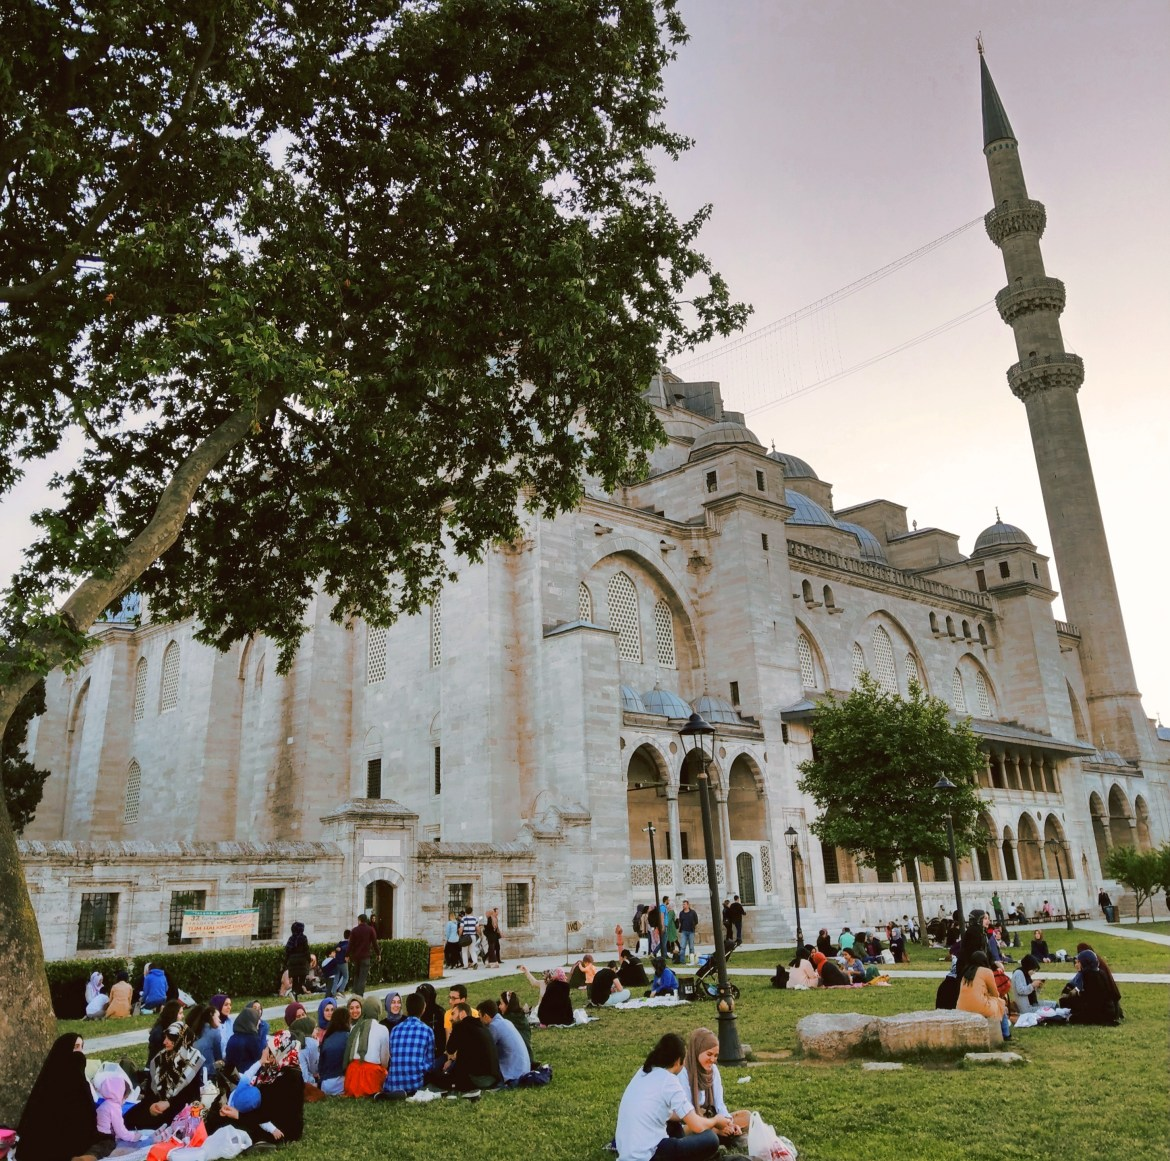 6) Iftar gathering at Suleimaniye Mosque